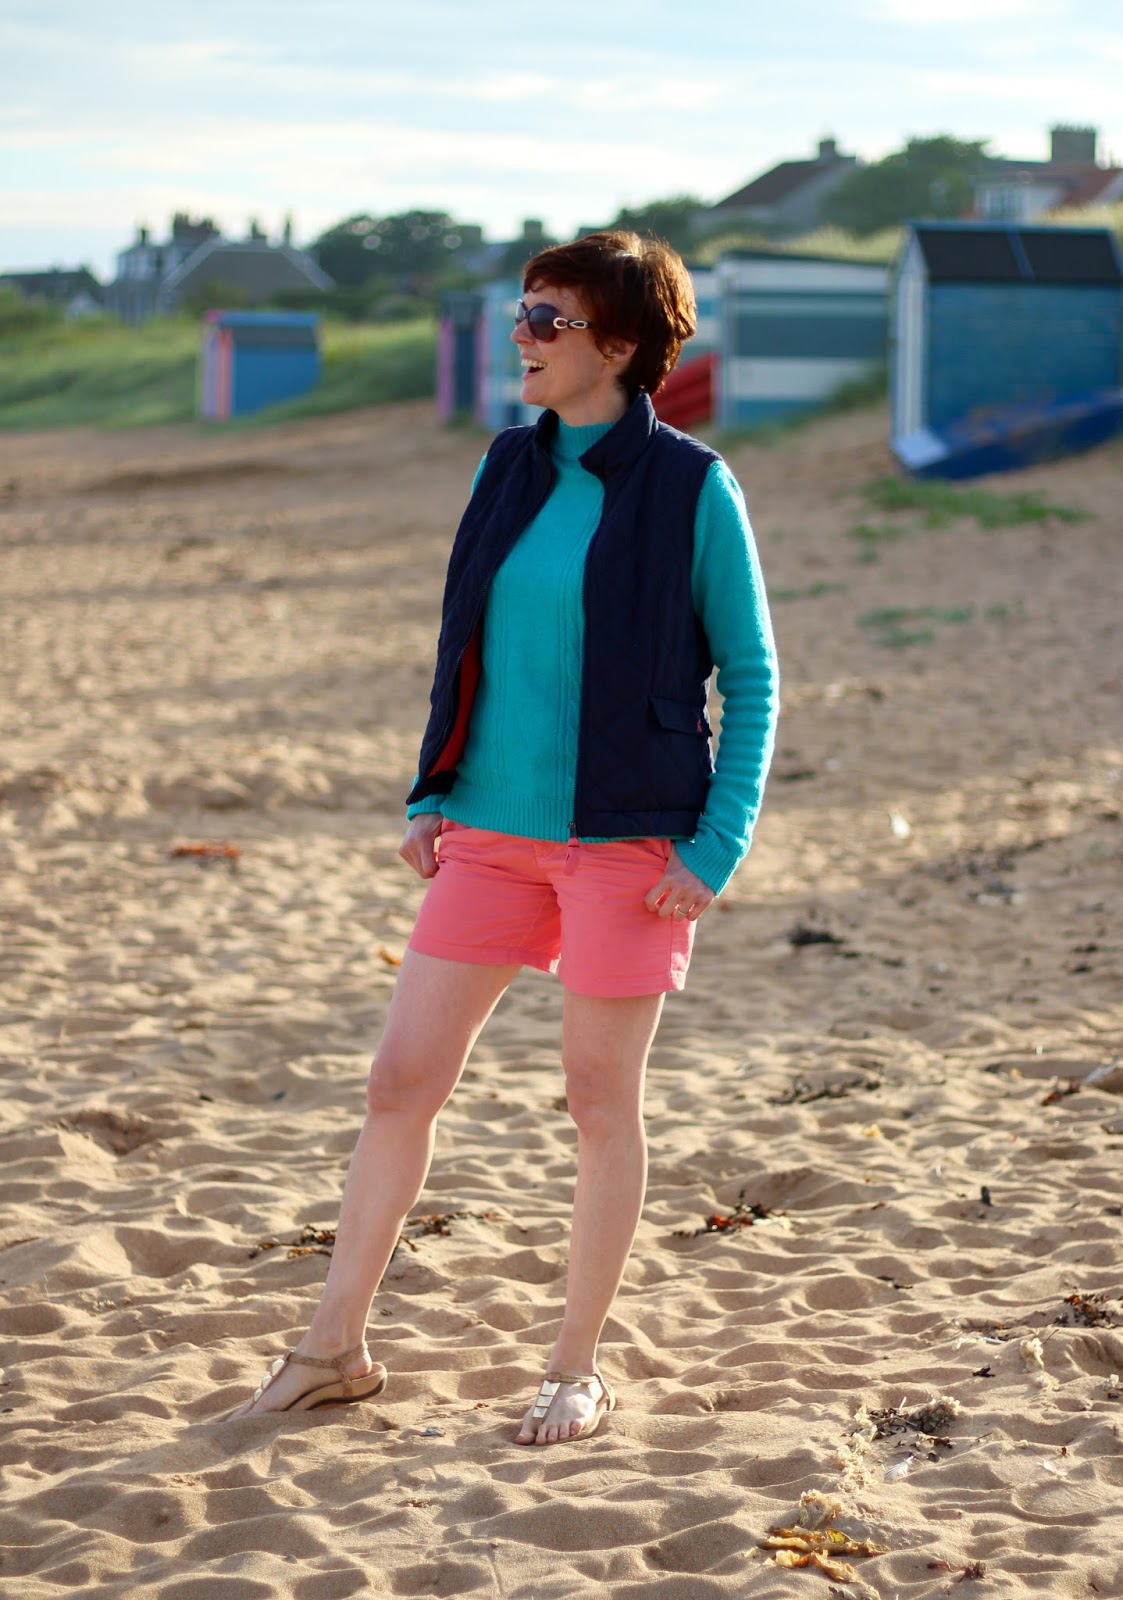 Fatface shorts & wool jumper on the beach! PPP